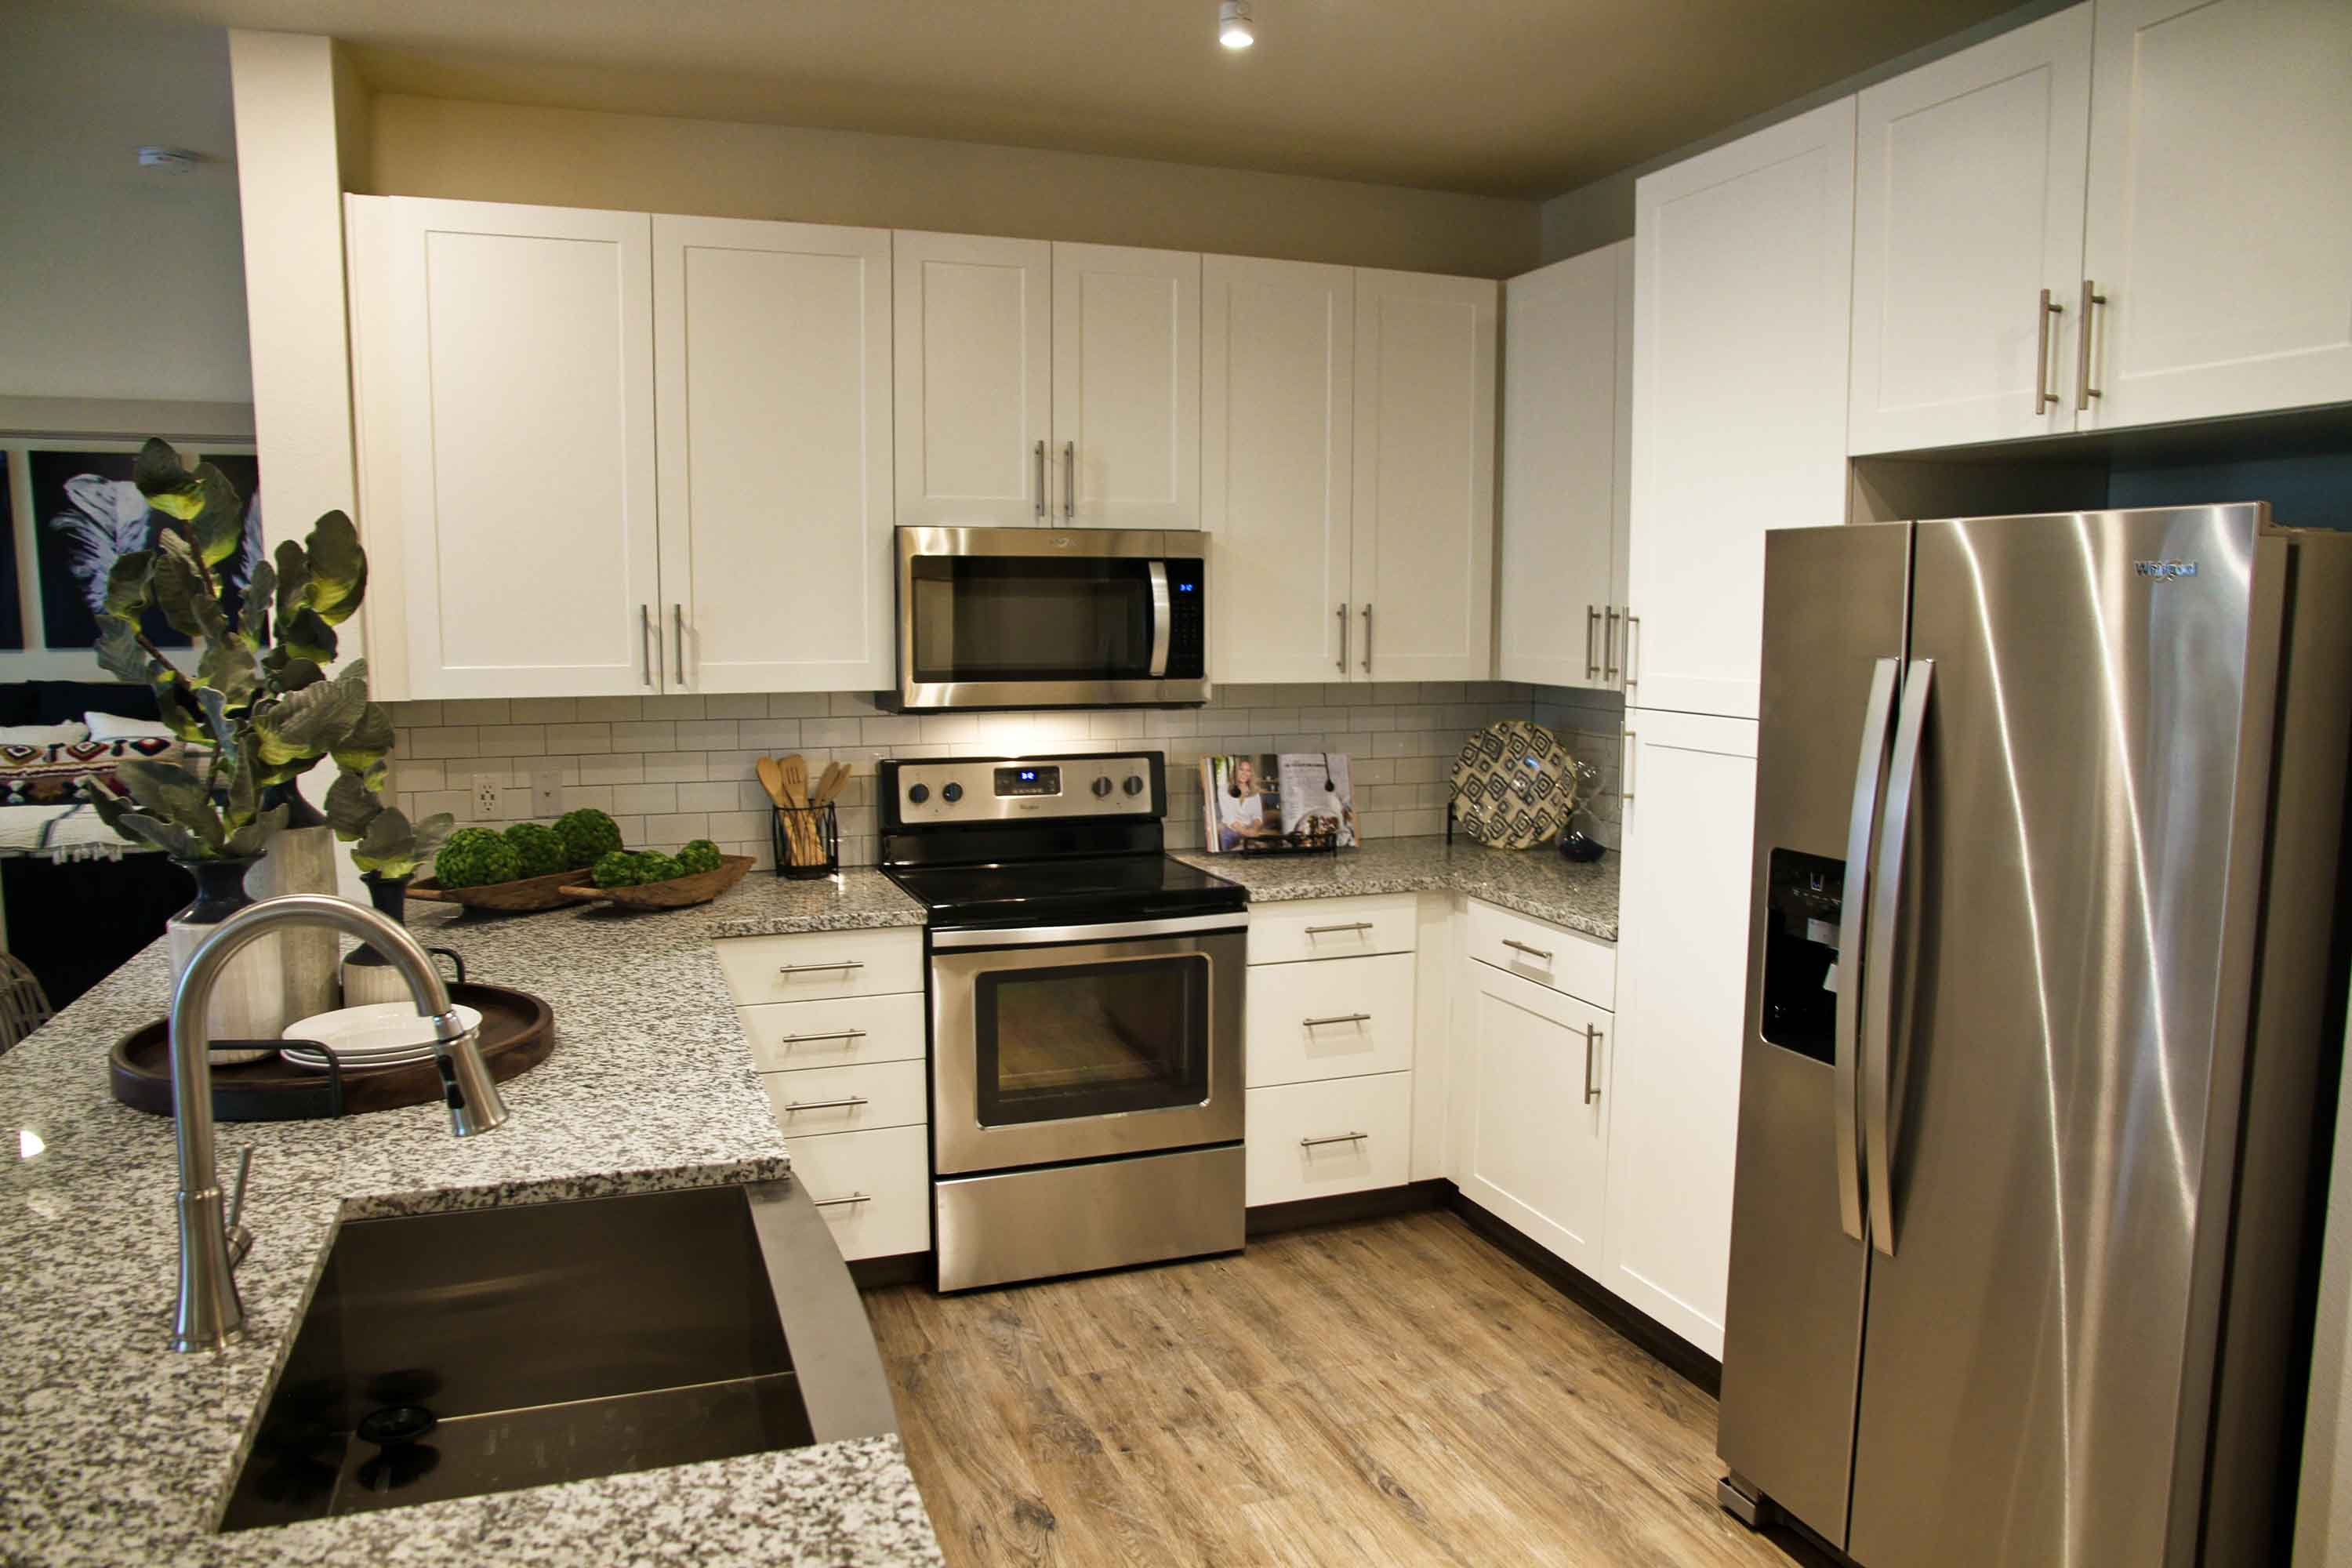 Kitchen with hardwood style floors, smooth granite countertops, and stainless steel farmhouse sink and appliances.